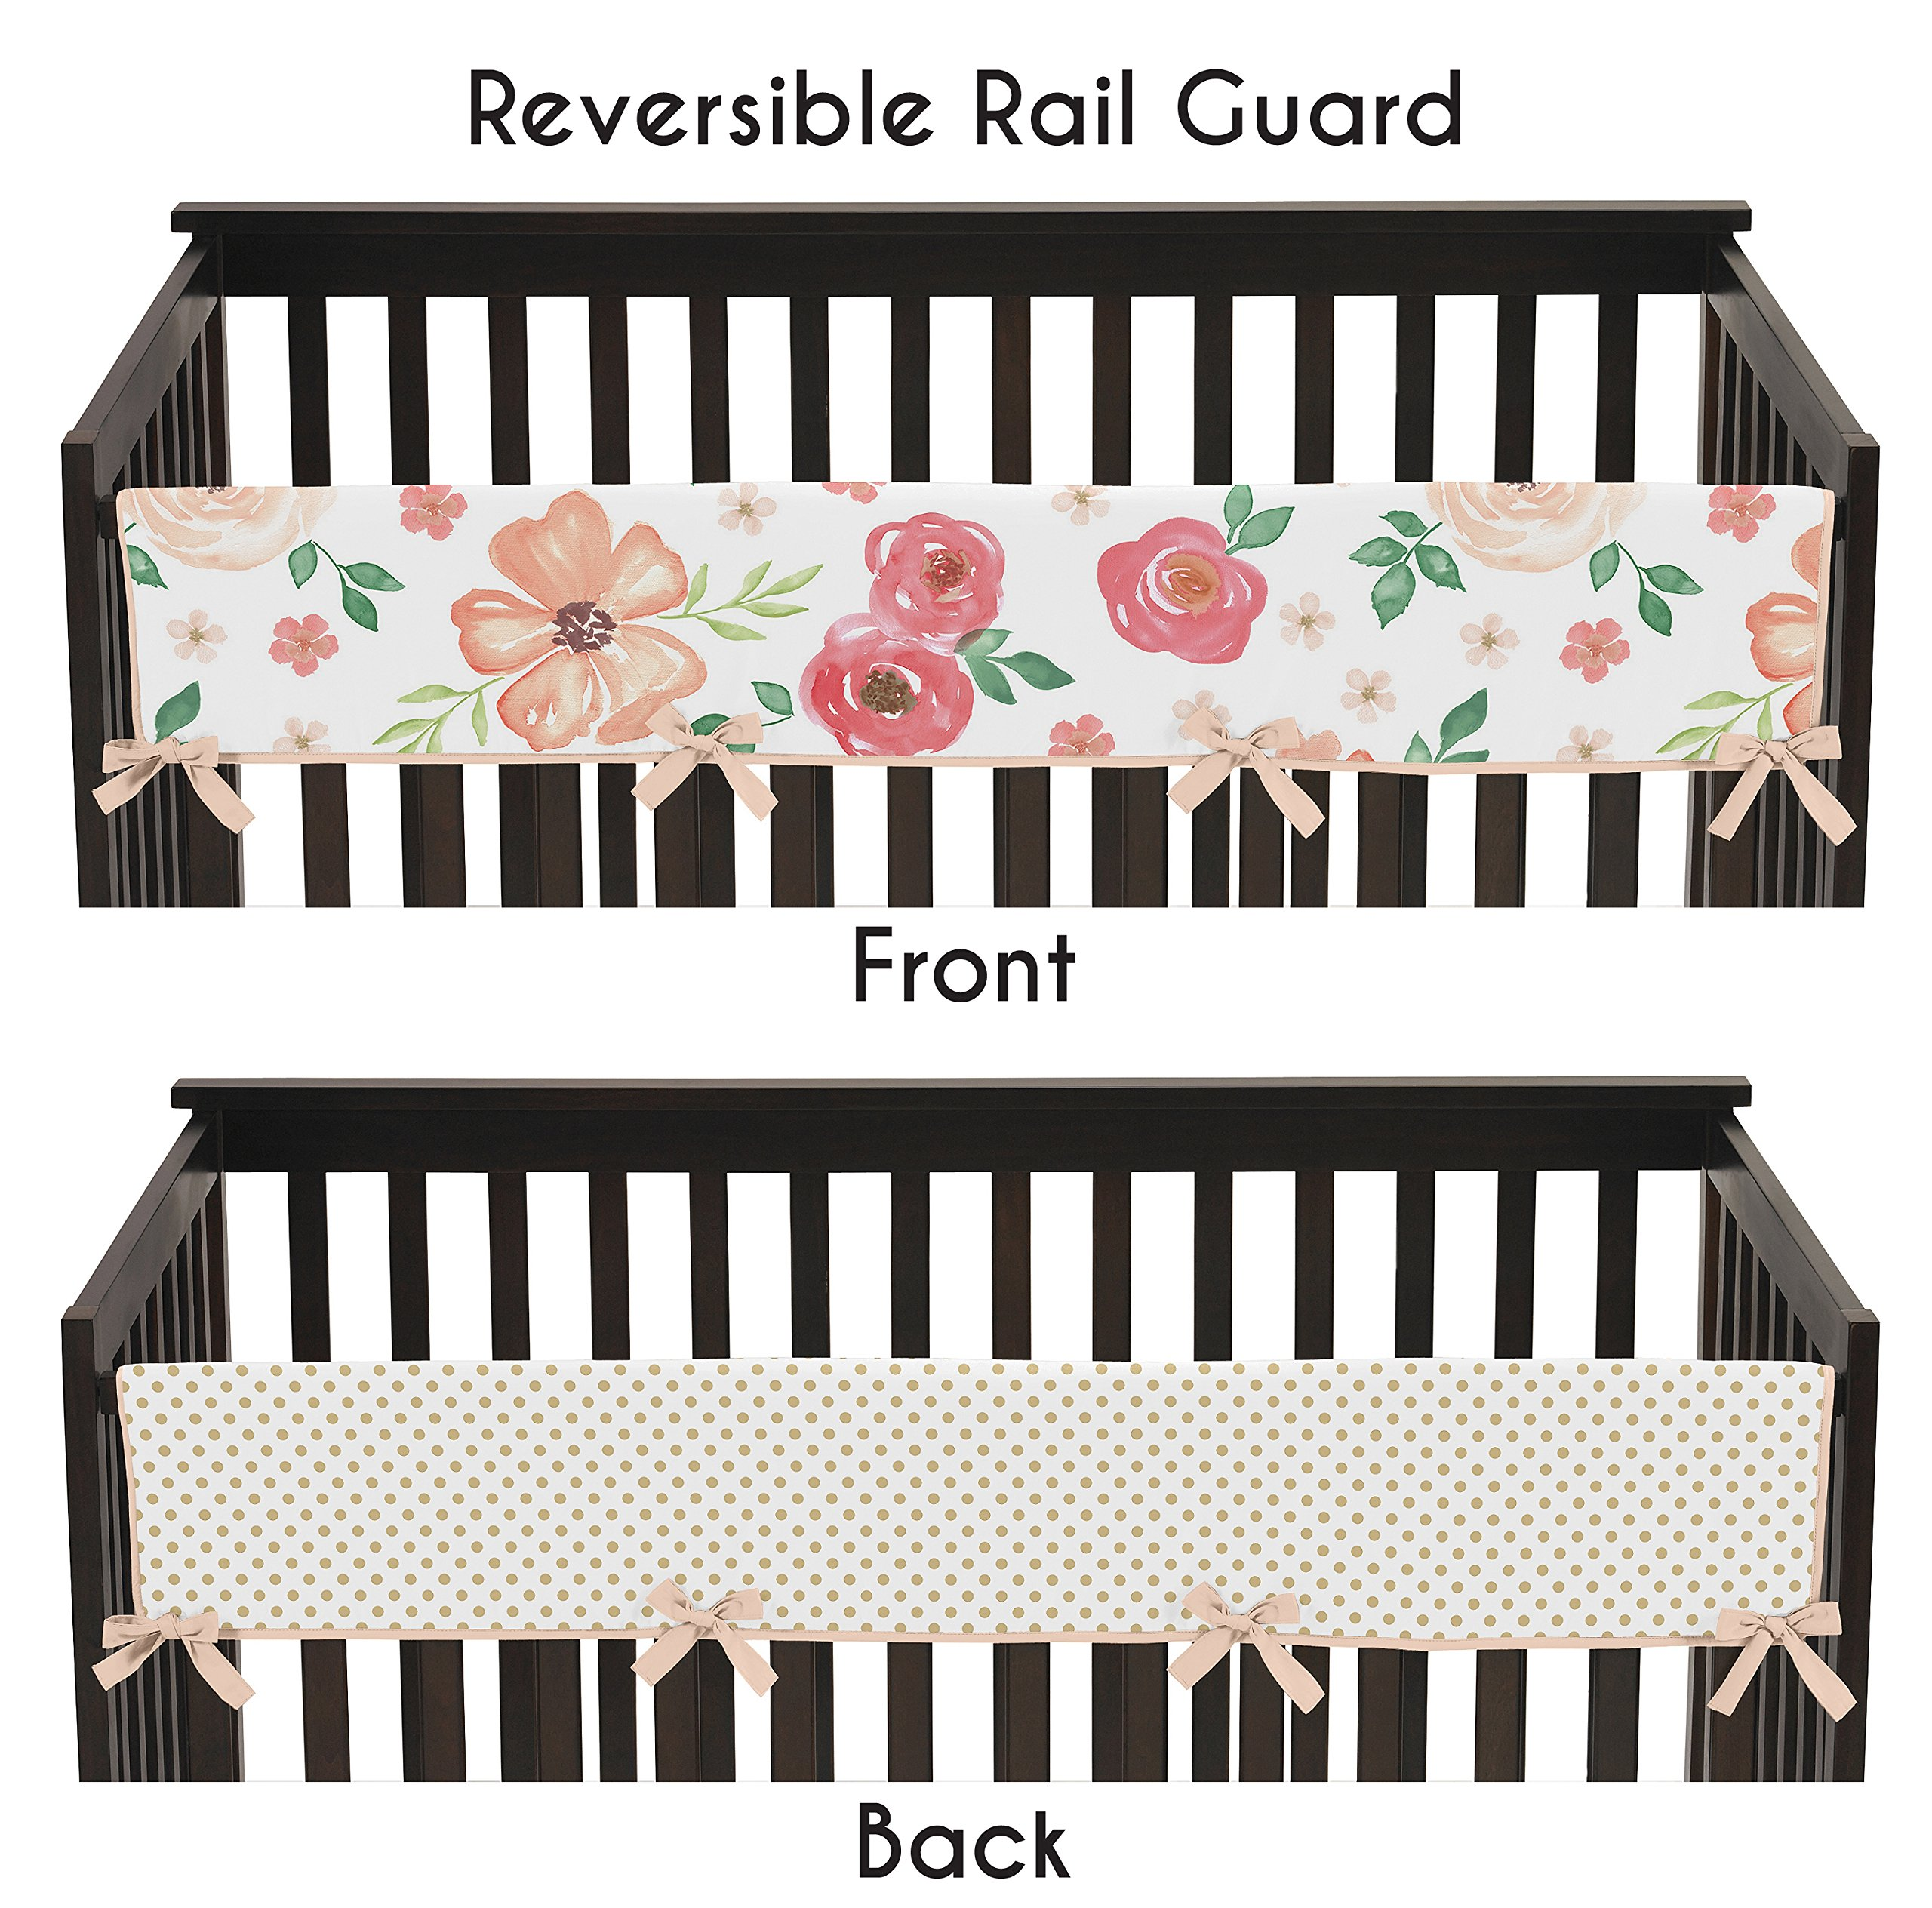 Sweet JoJo Designs Peach, Green and Gold Long Front Crib Rail Guard Baby Teething Cover Protector Wrap for Watercolor Floral Collection - Pink Rose Flower Polka Dot